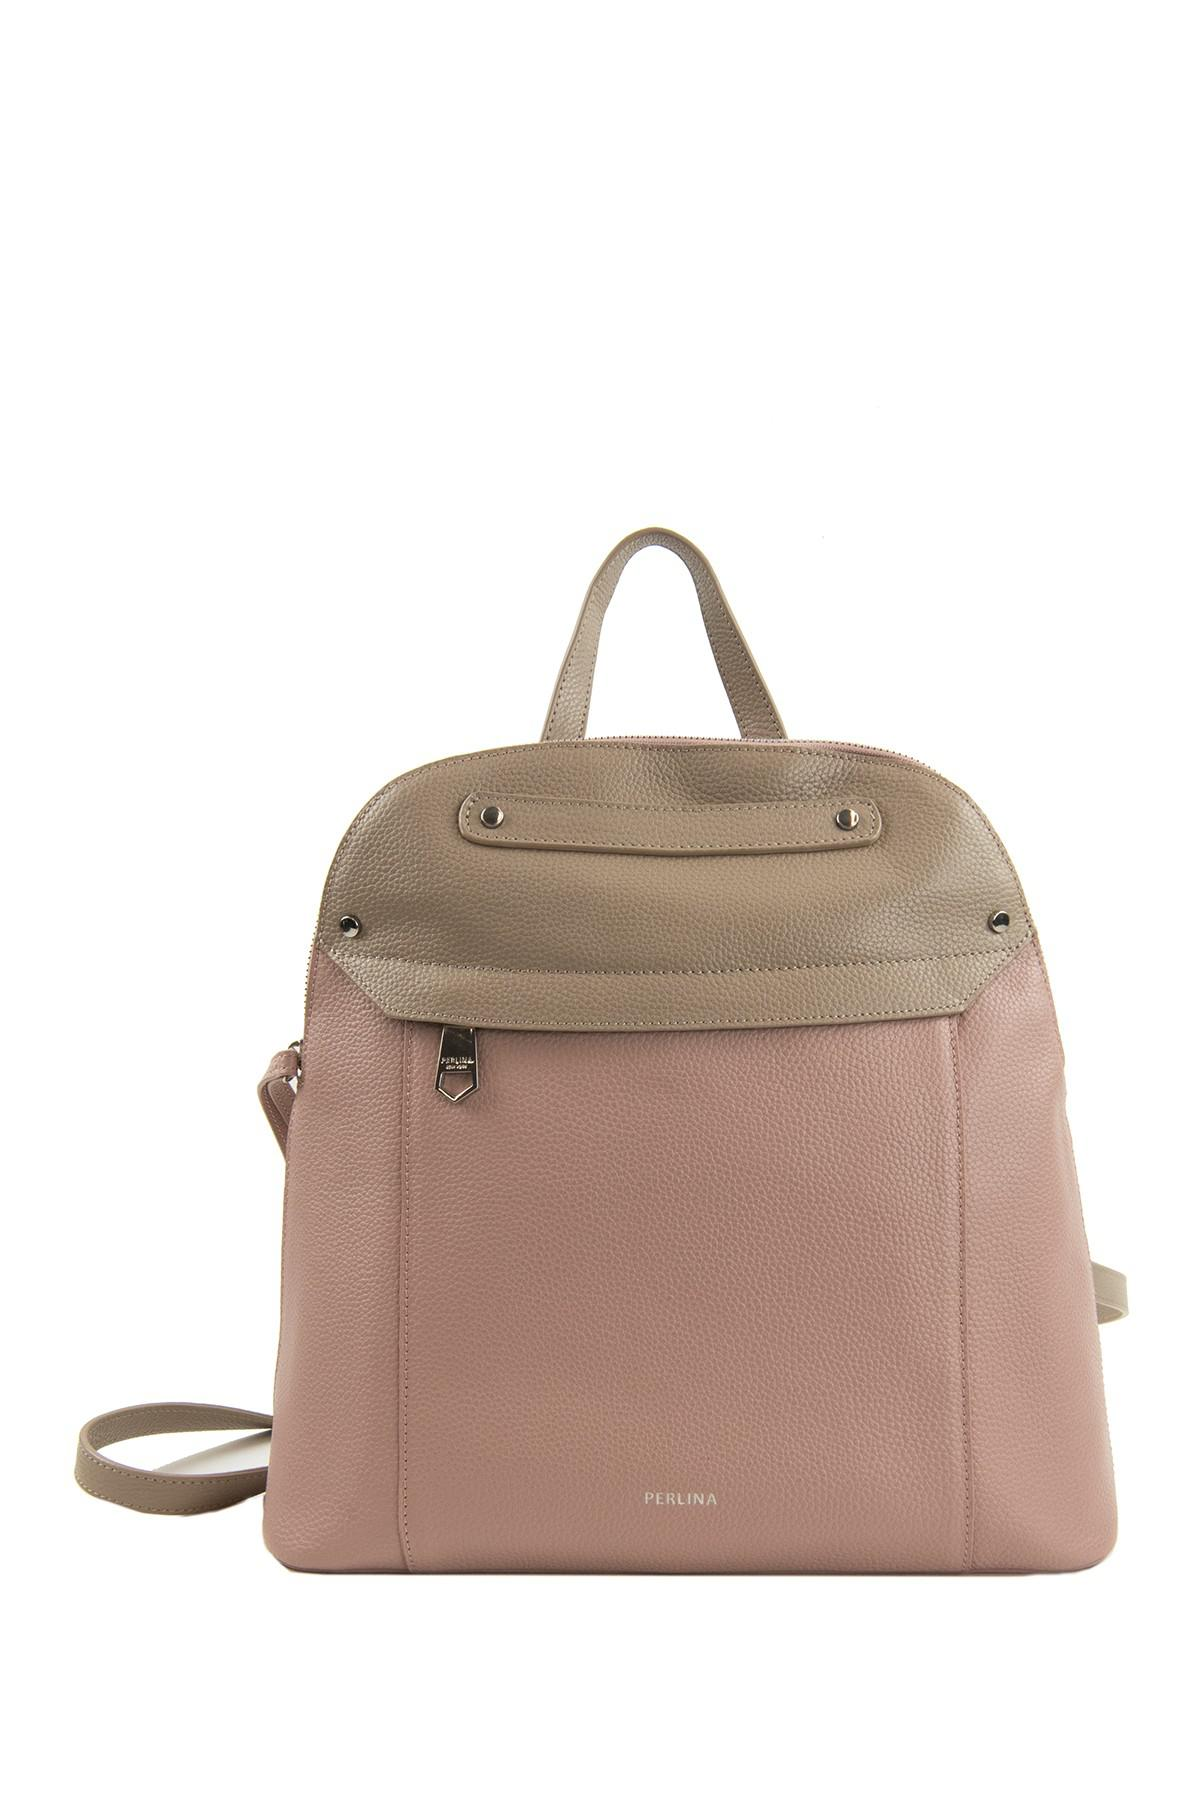 Lyst - Perlina Emma Leather Backpack in Brown 5ea43f6382b66